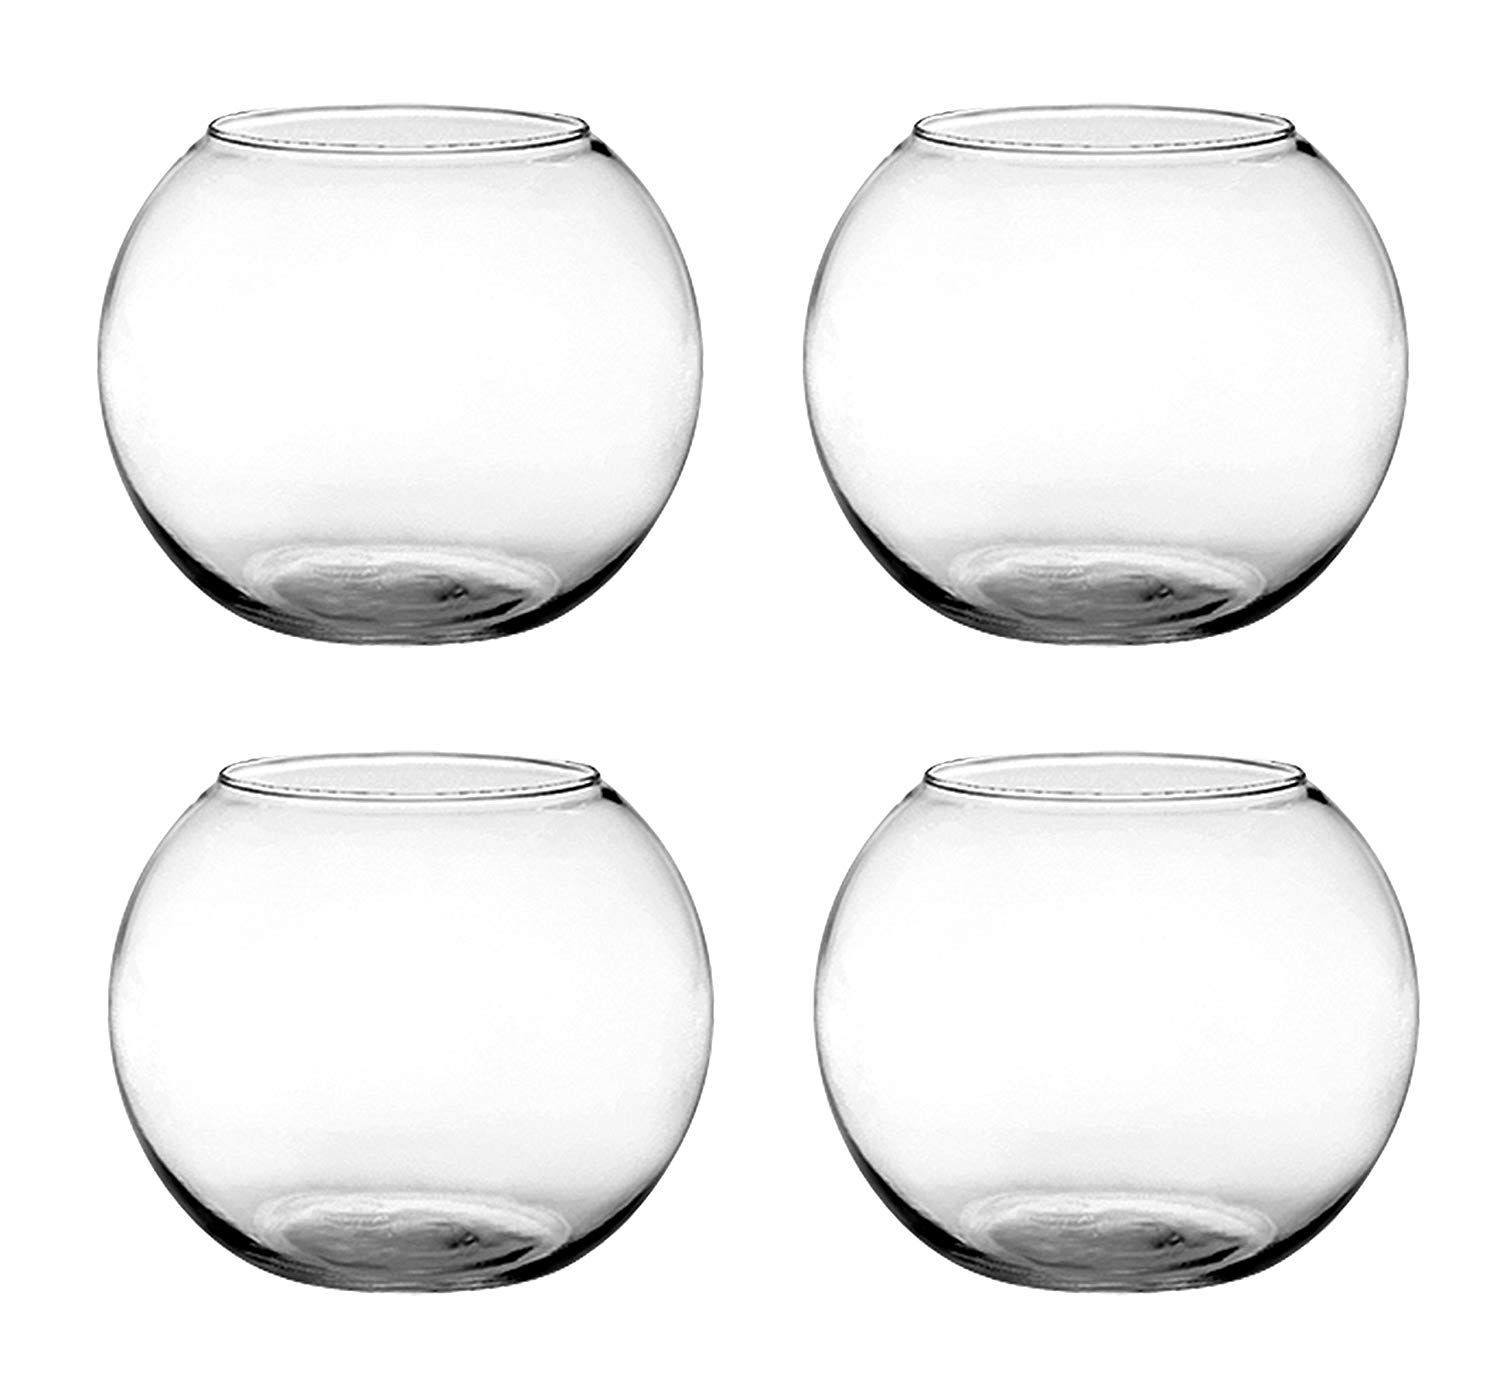 Ebay Vases for Sale Of 32 Wide Mouth Vase the Weekly World Inside Amazon Syndicate Sales 6 Rose Bowl Clear Planters Garden